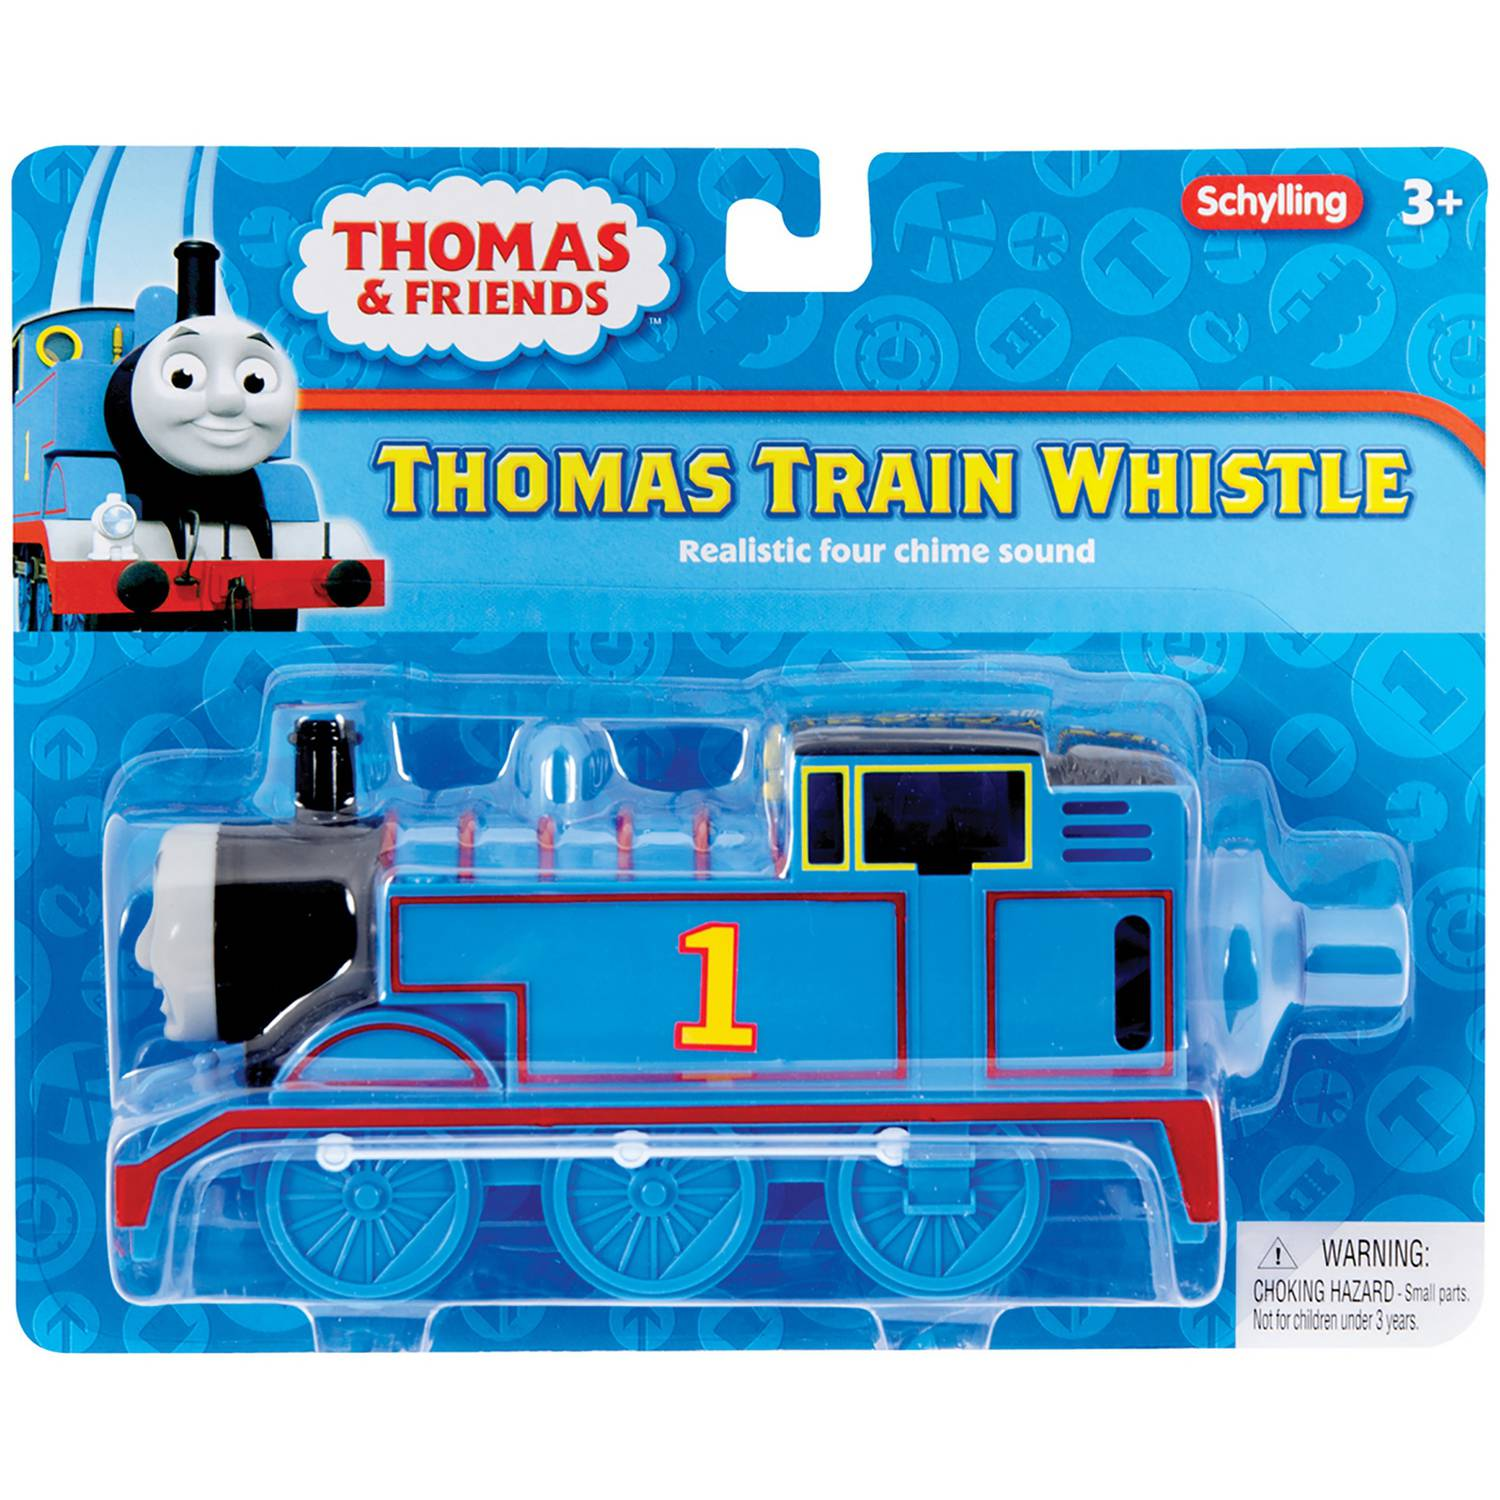 Schylling Thomas and Friends Thomas Train Whistle